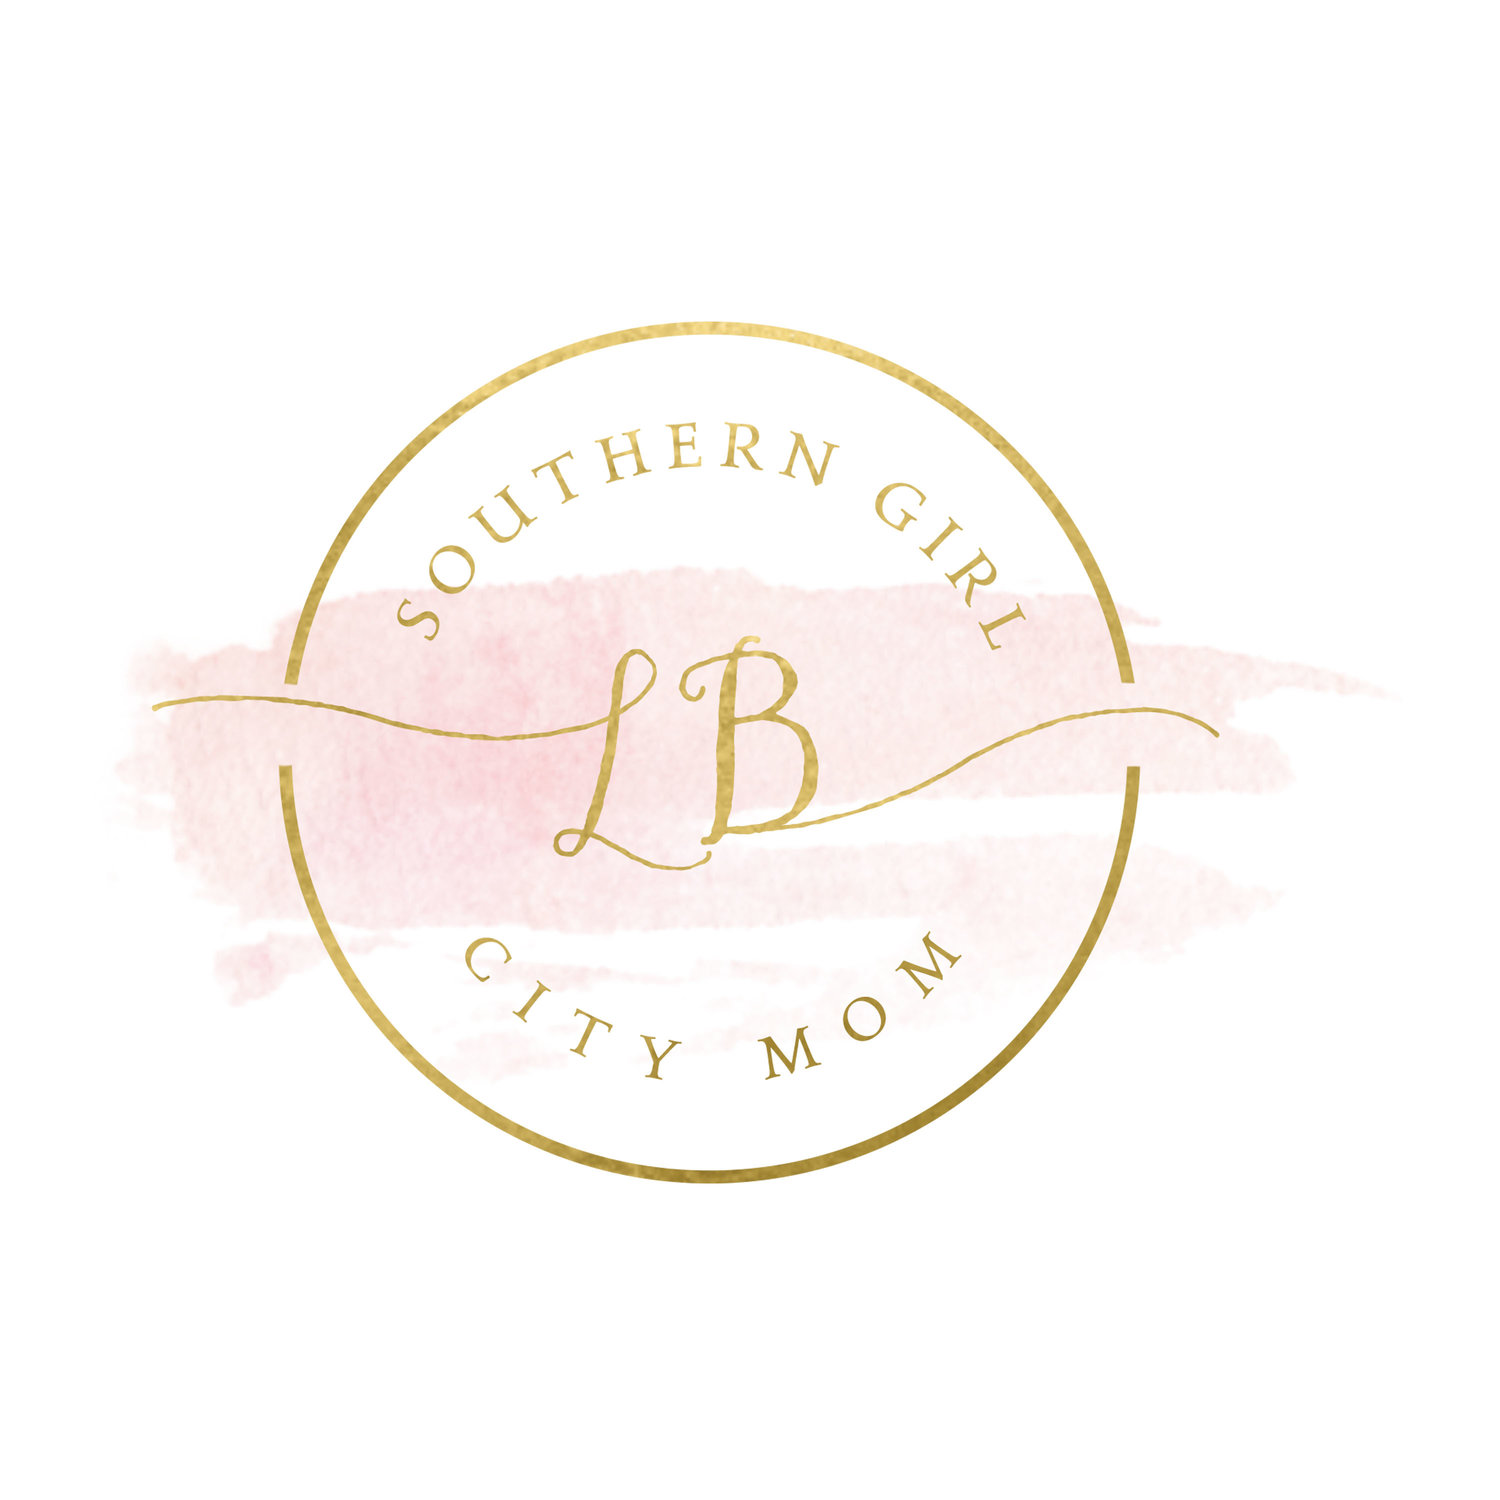 Southern Girl City Mom